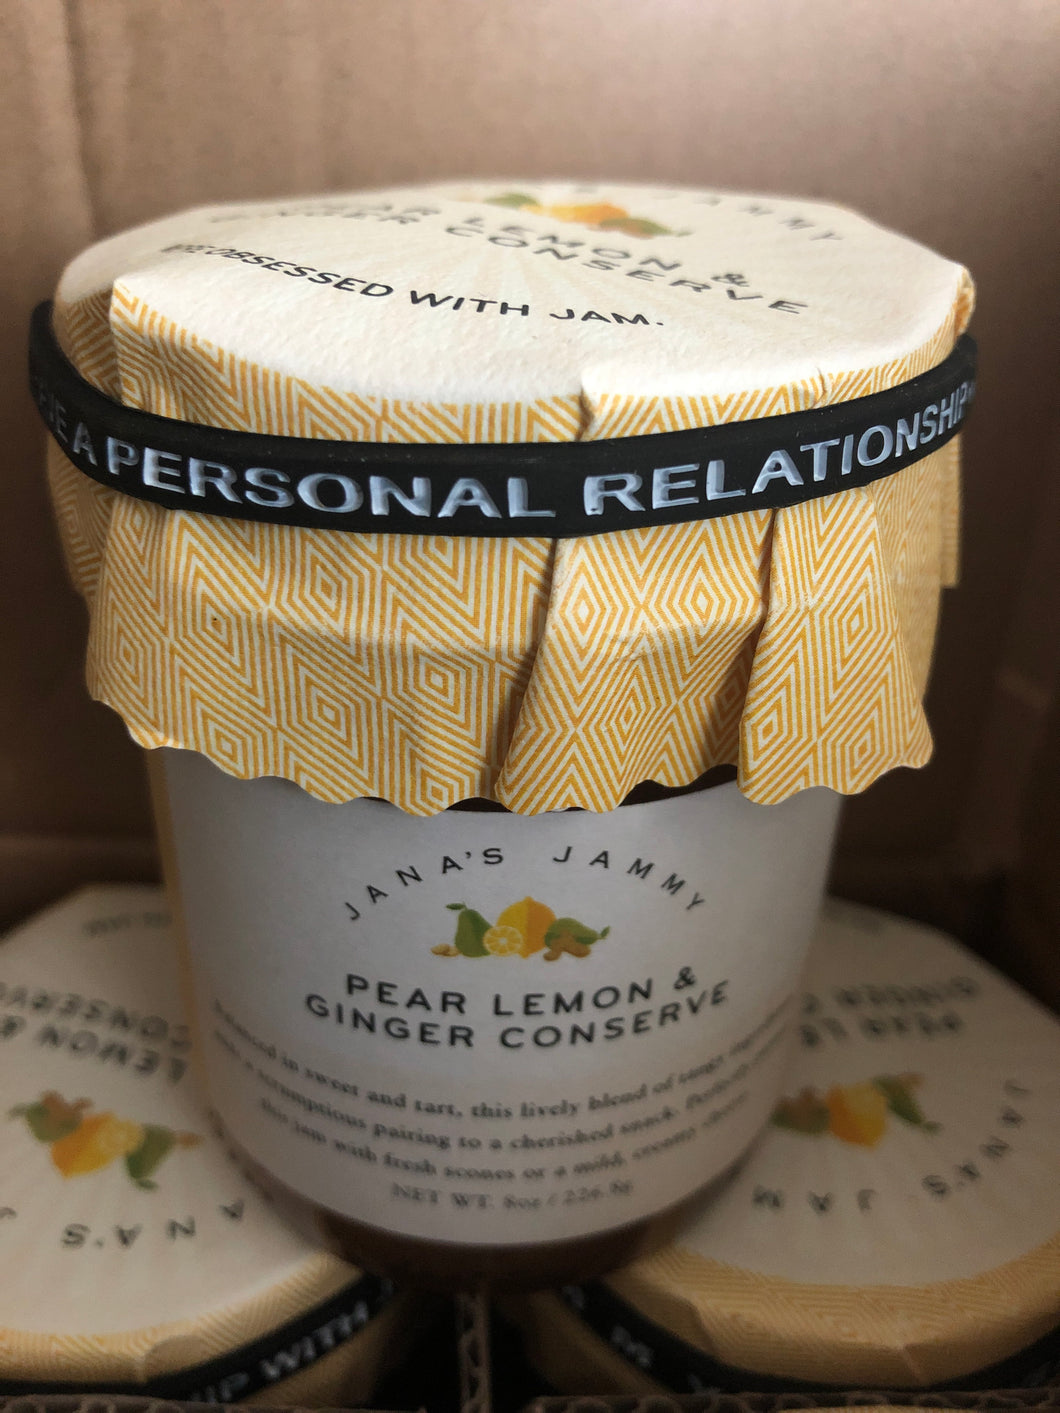 Pear lemon & ginger conserve